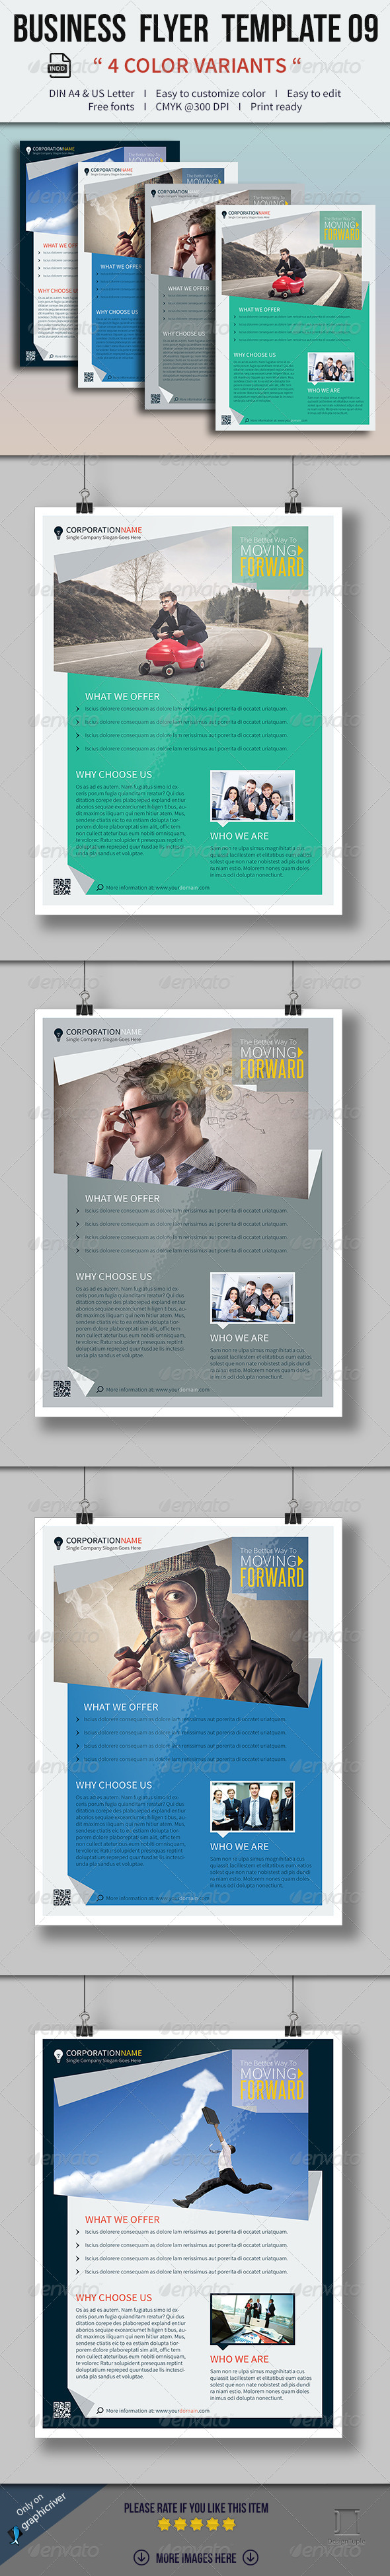 GraphicRiver Business Flyer Template 09 8473869